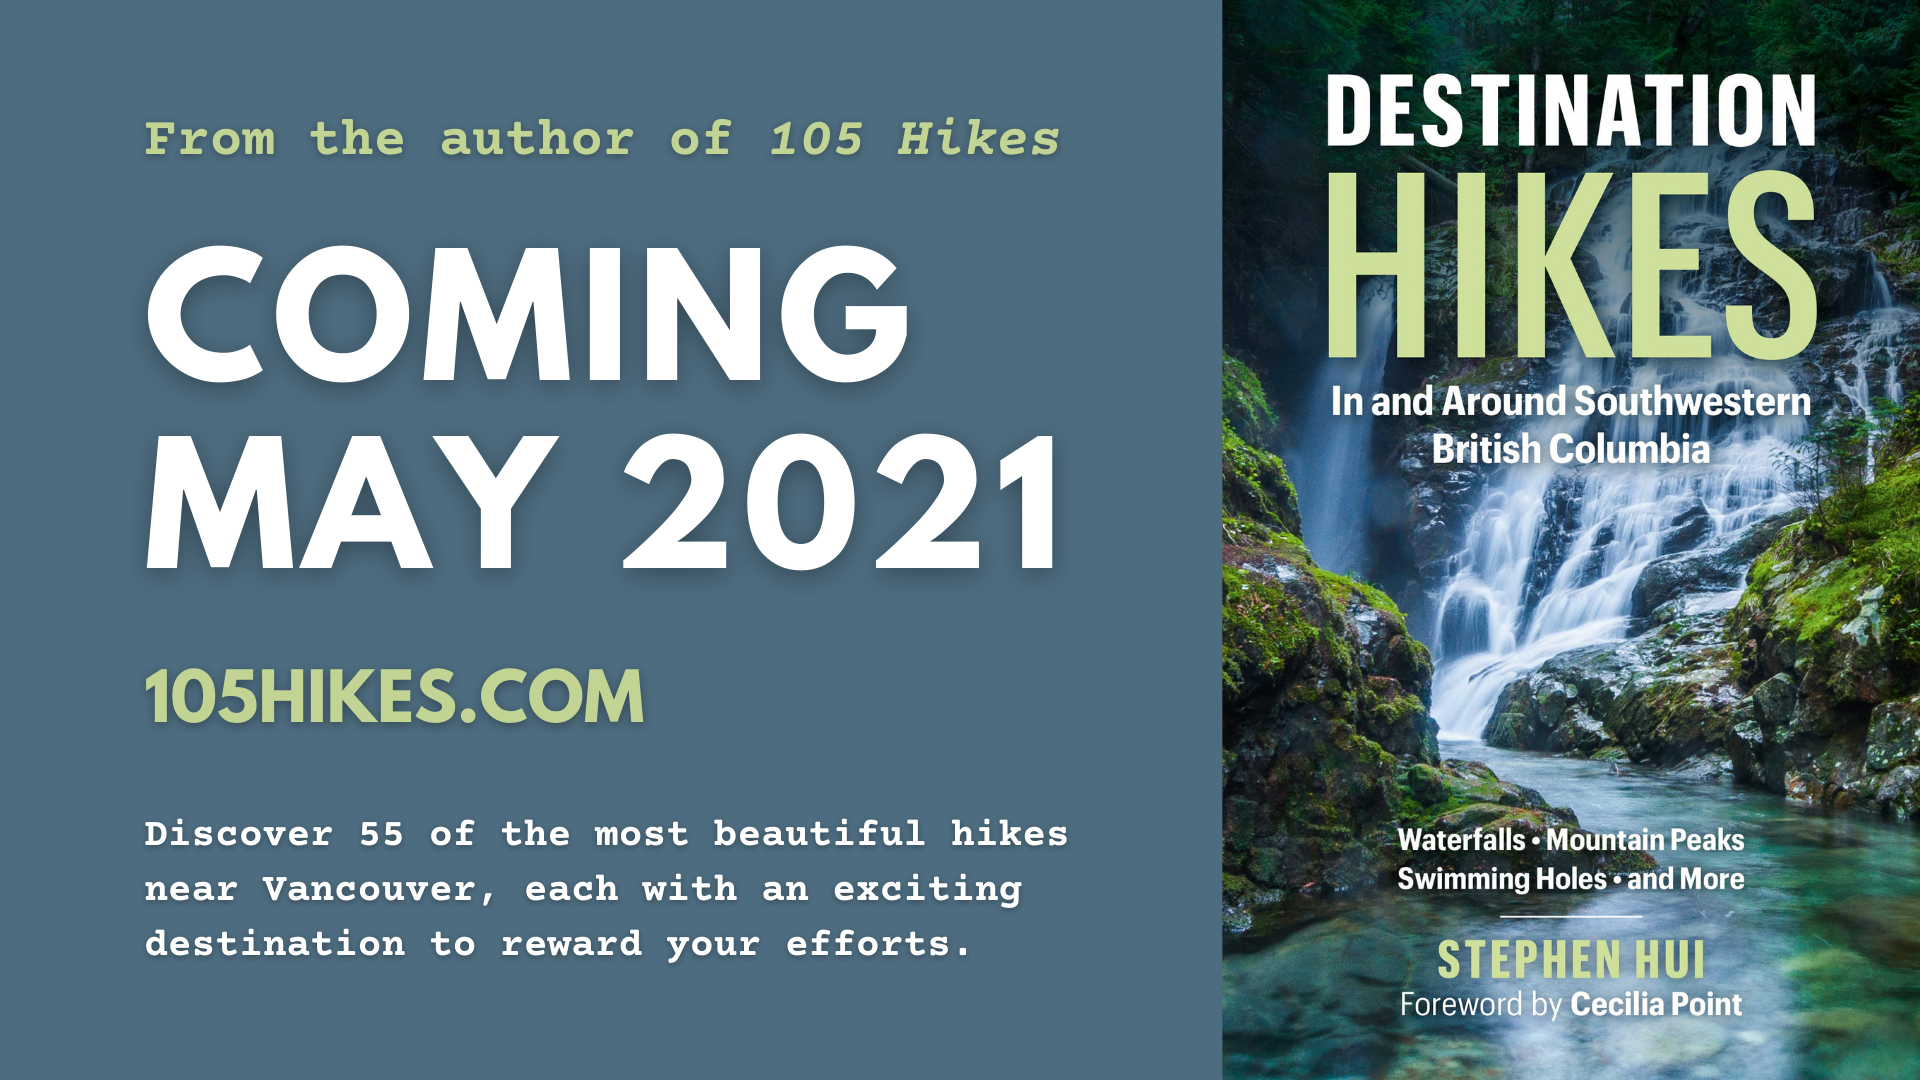 Destination Hikes is coming May 2021